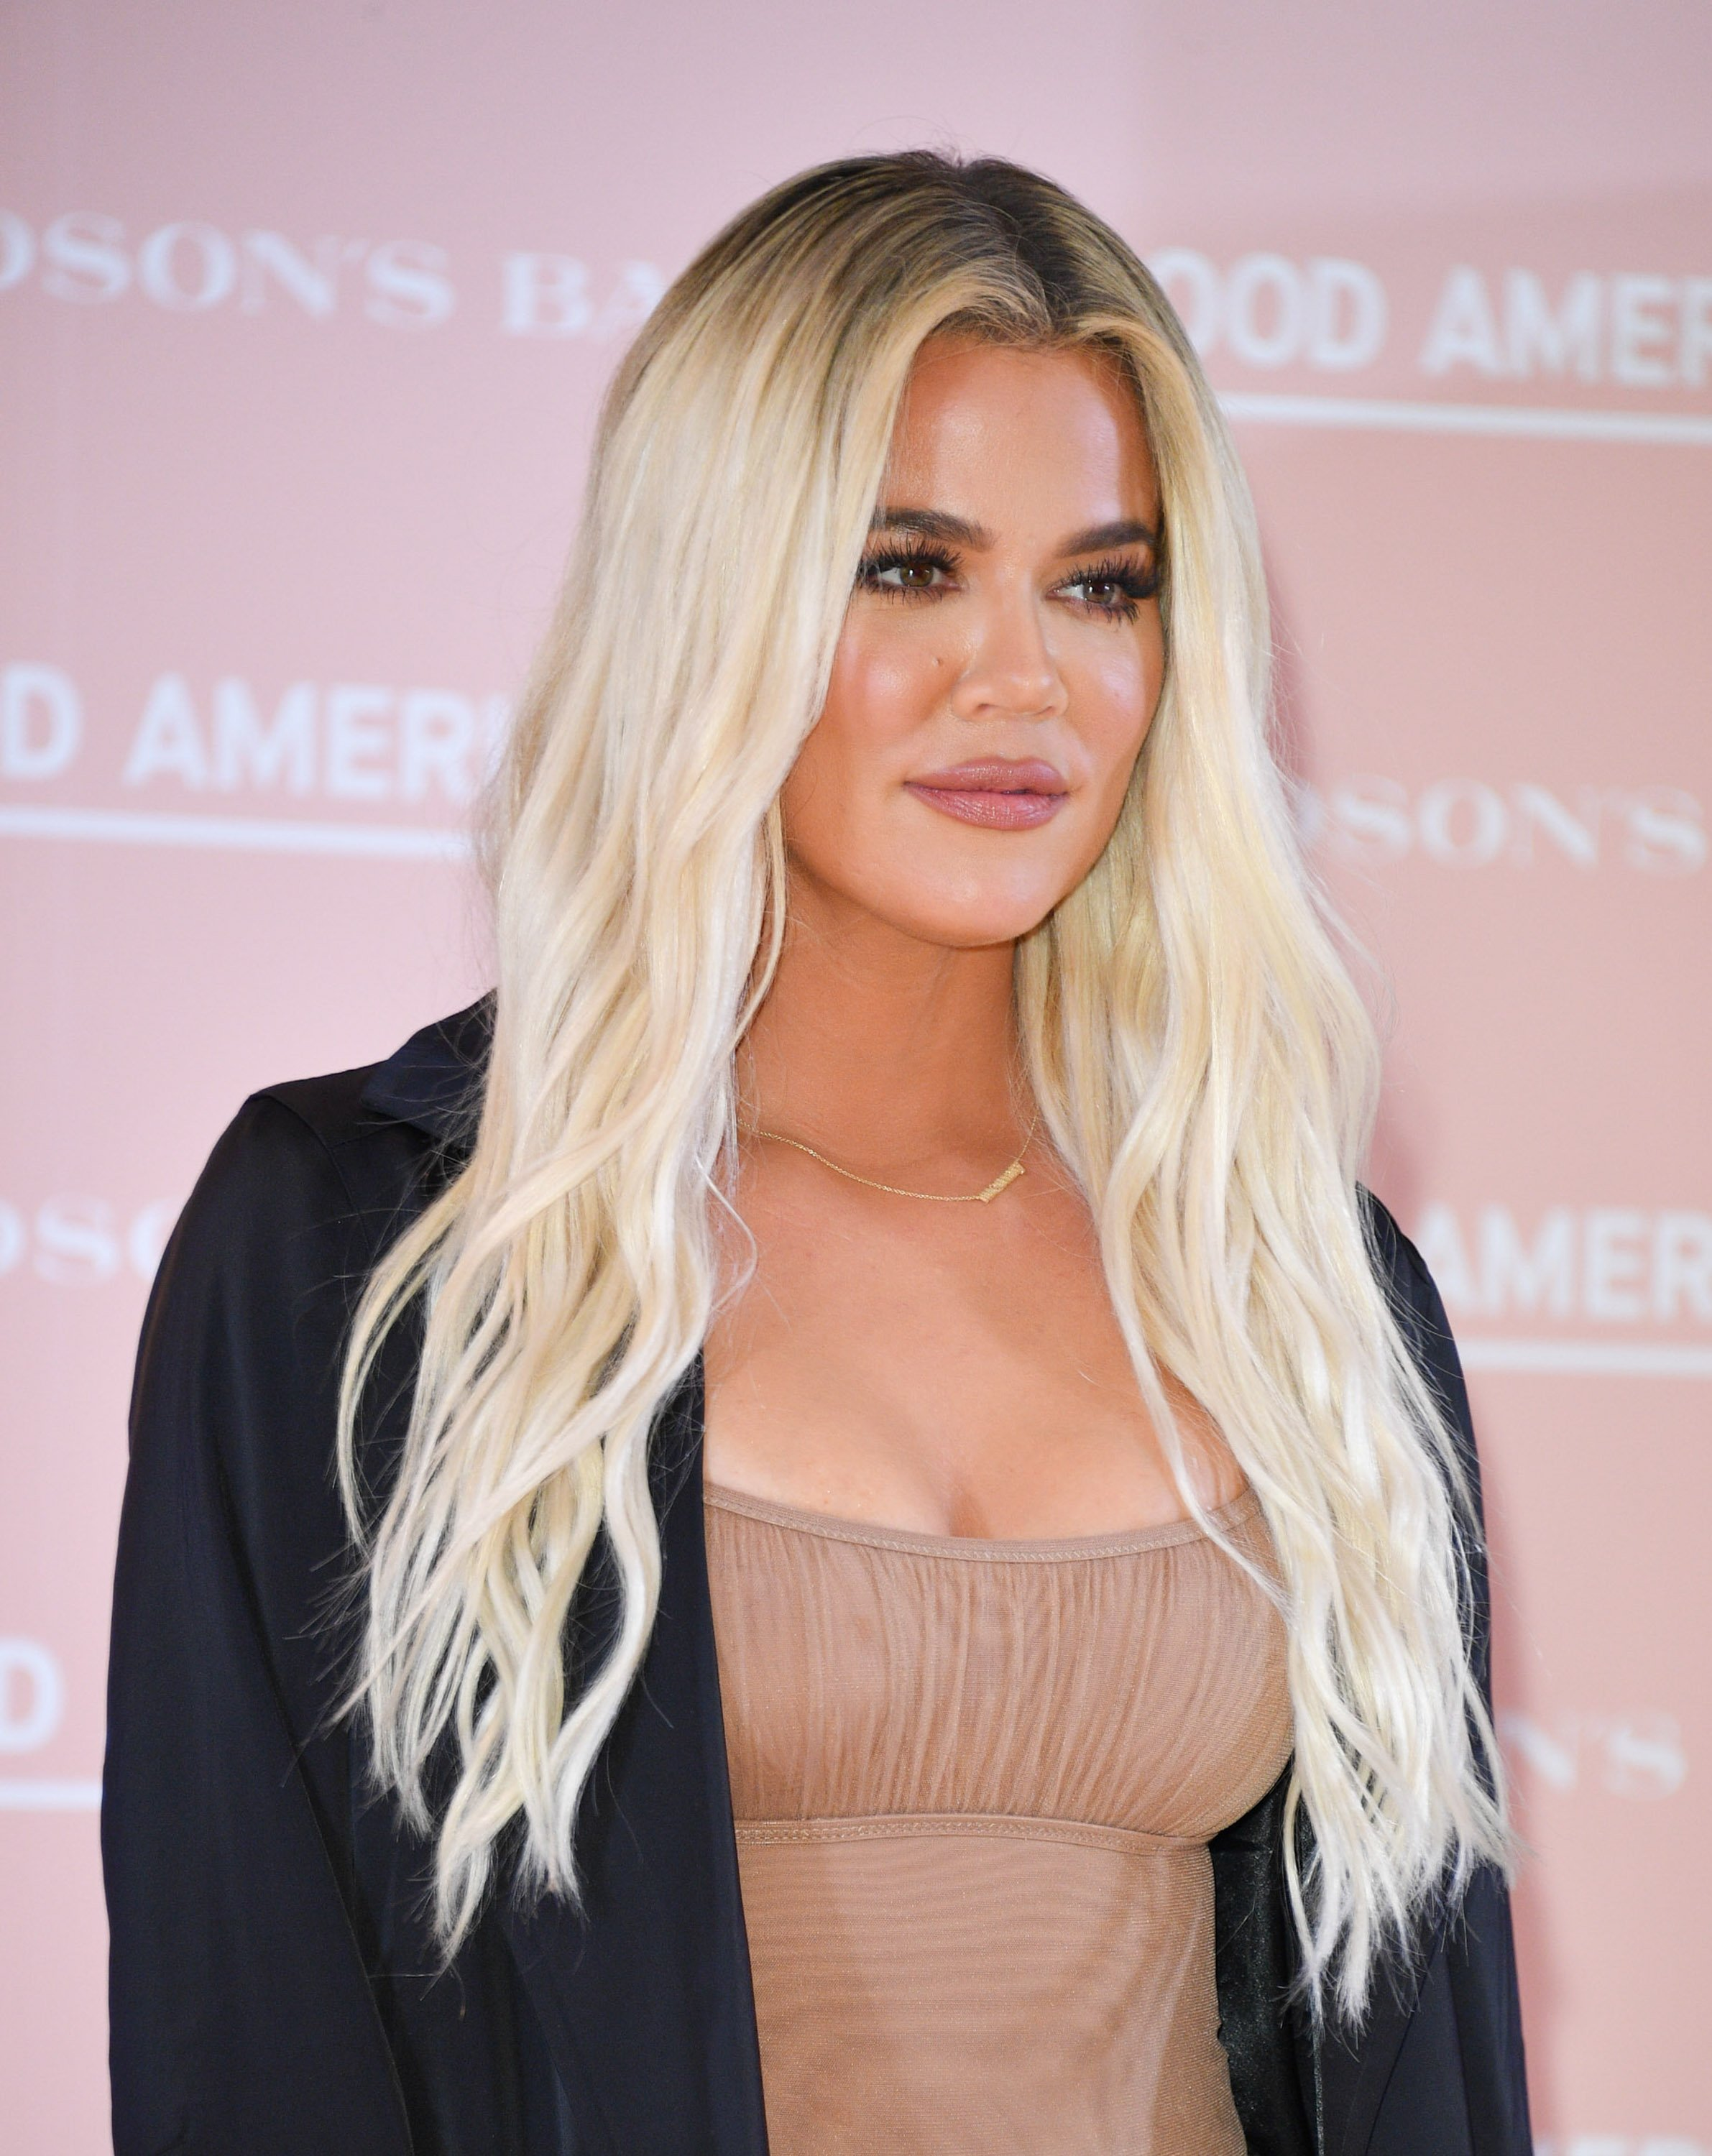 Khloe Kardashian attends Hudson's Bay's launch of Good American in Toronto on September 18, 2019. | Source: Getty Images.